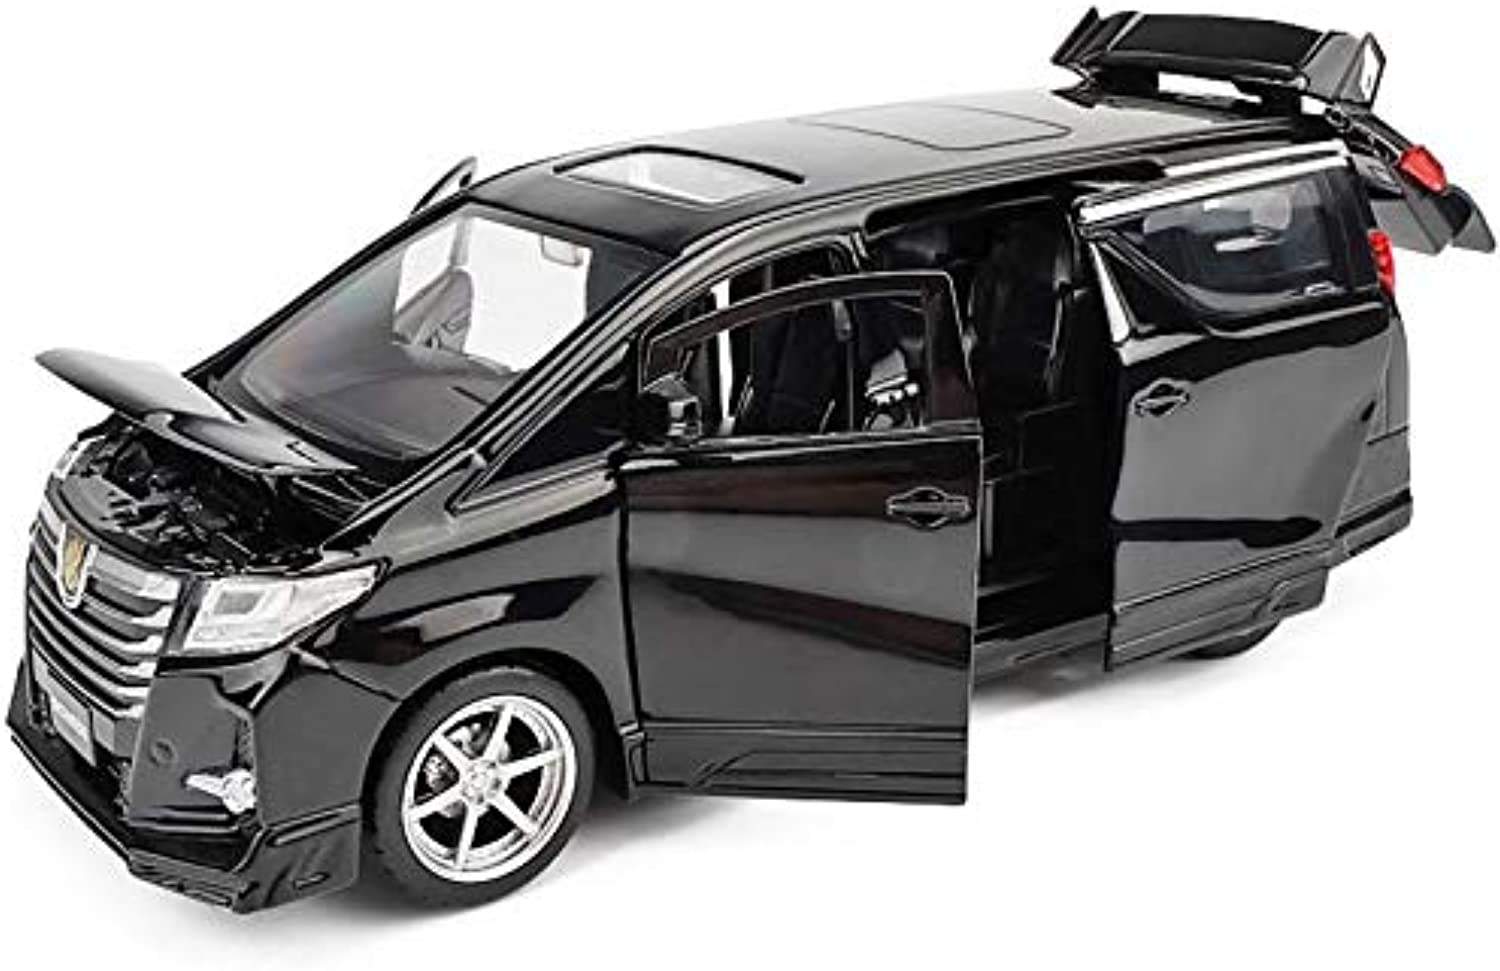 Generic Sound&Light Toyota Alphard MPV 1 1 1 32 Scale Alloy Pull Back car Toy,diecast Metal Model Toy Vehicle,Collection Model Black 7c0e95